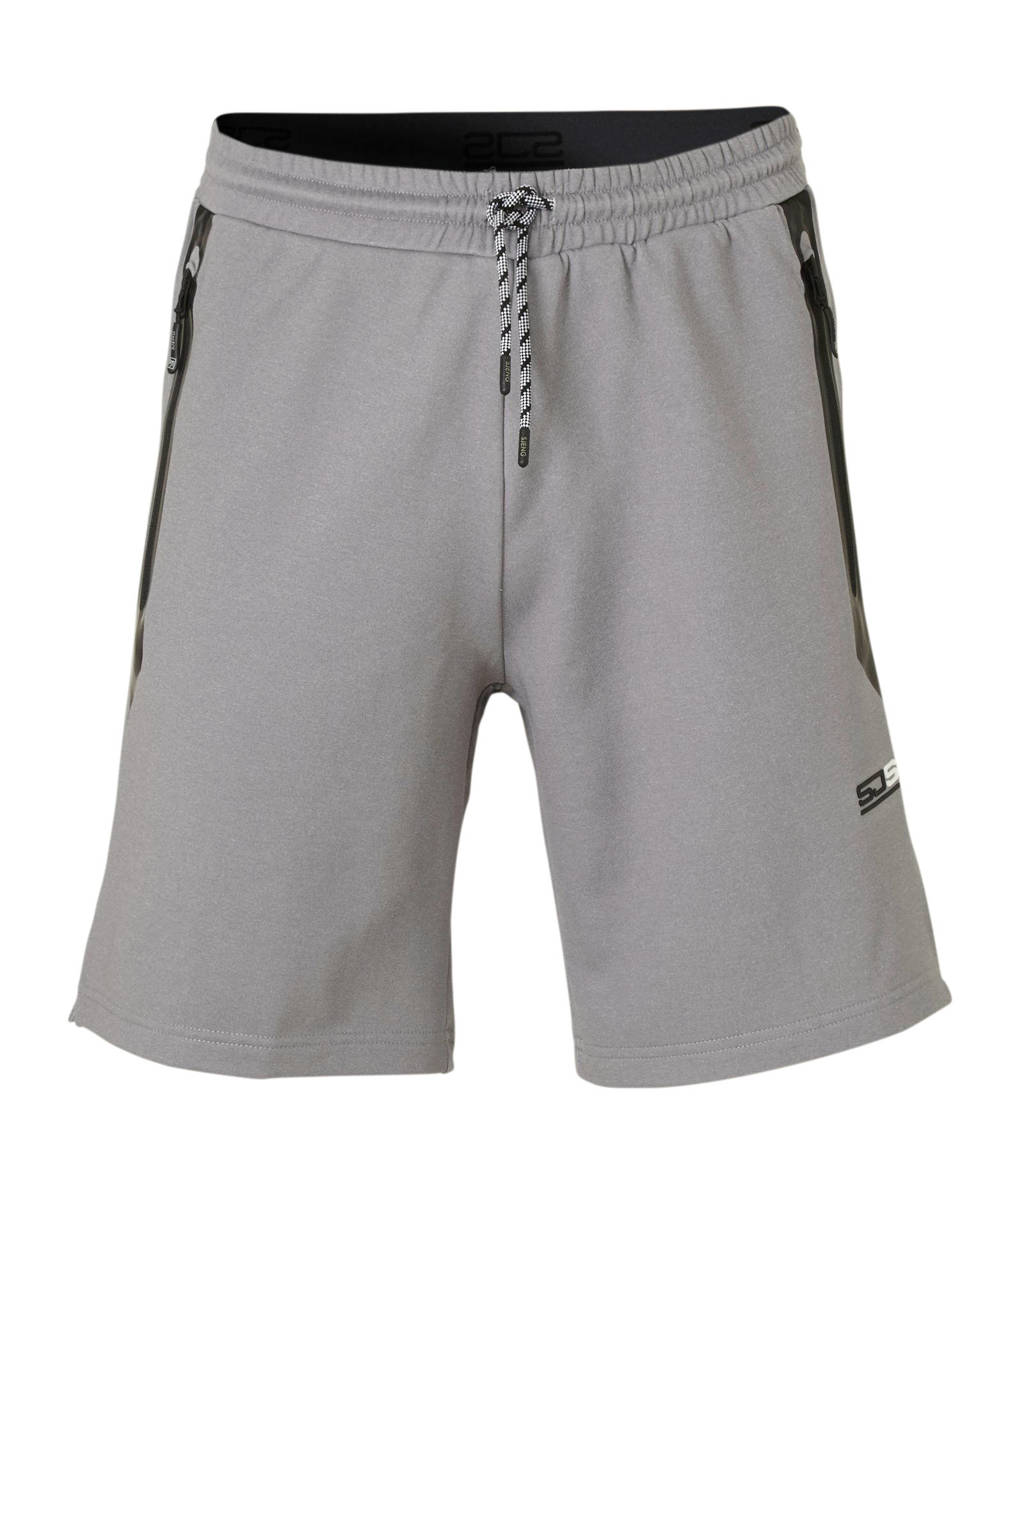 Sjeng Sports   short grijs, Grijs